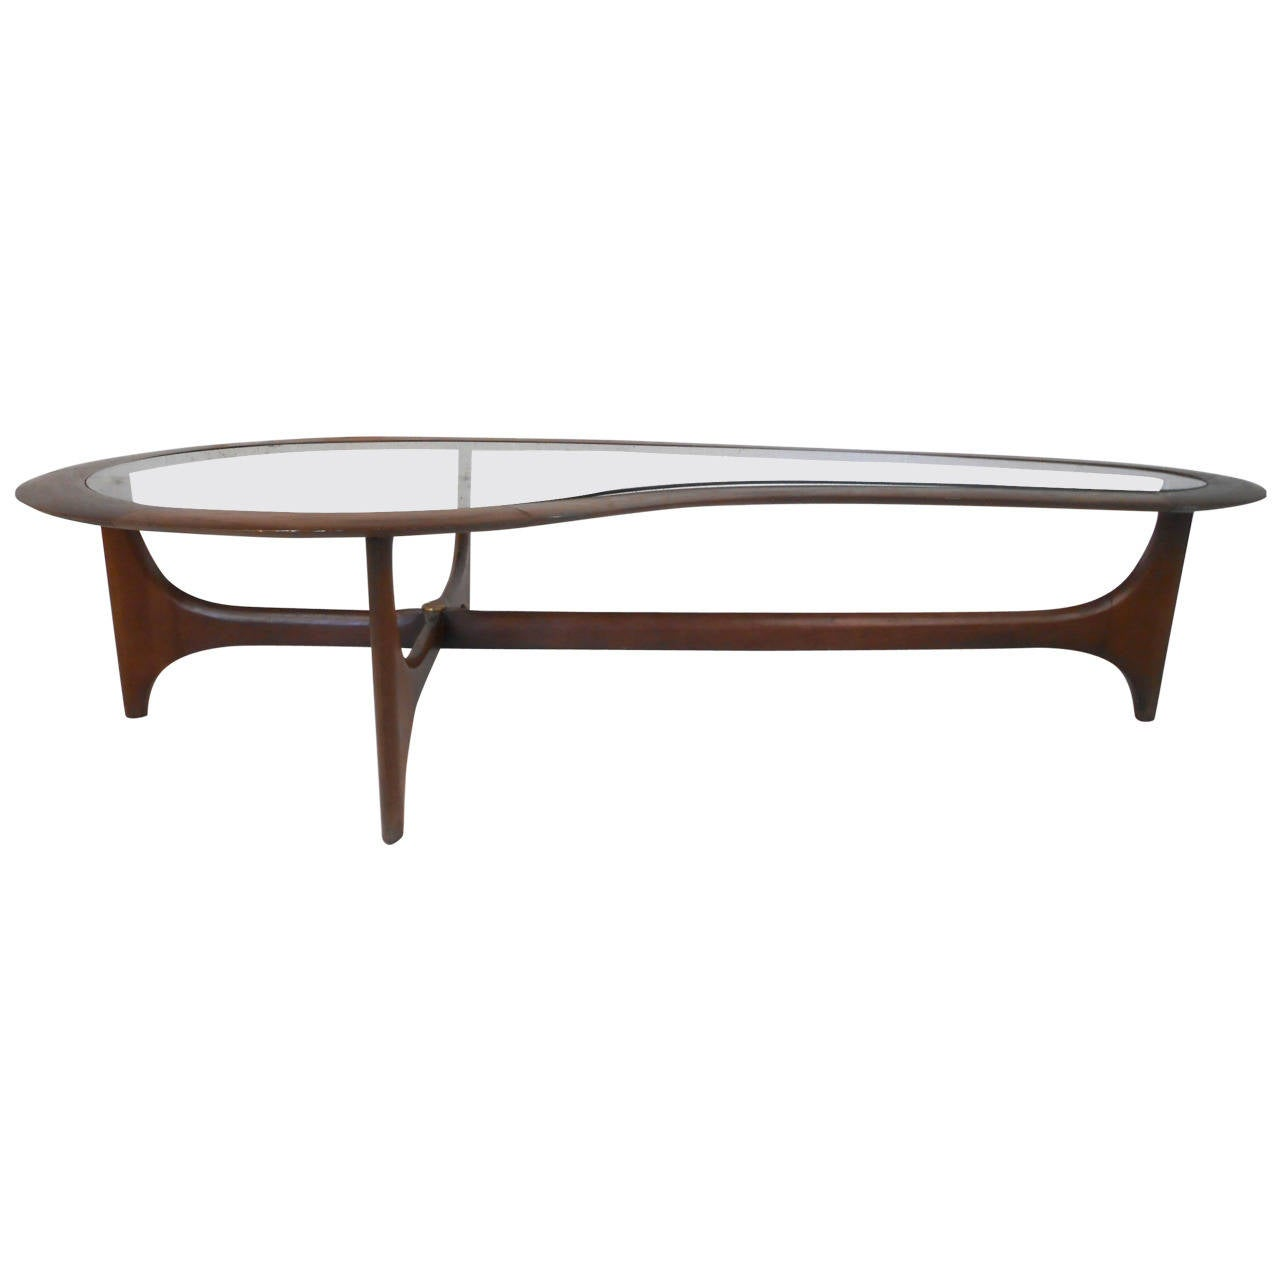 Mid Century Modern Pearsall Style Kidney Coffee Table By Lane At 1stdibs